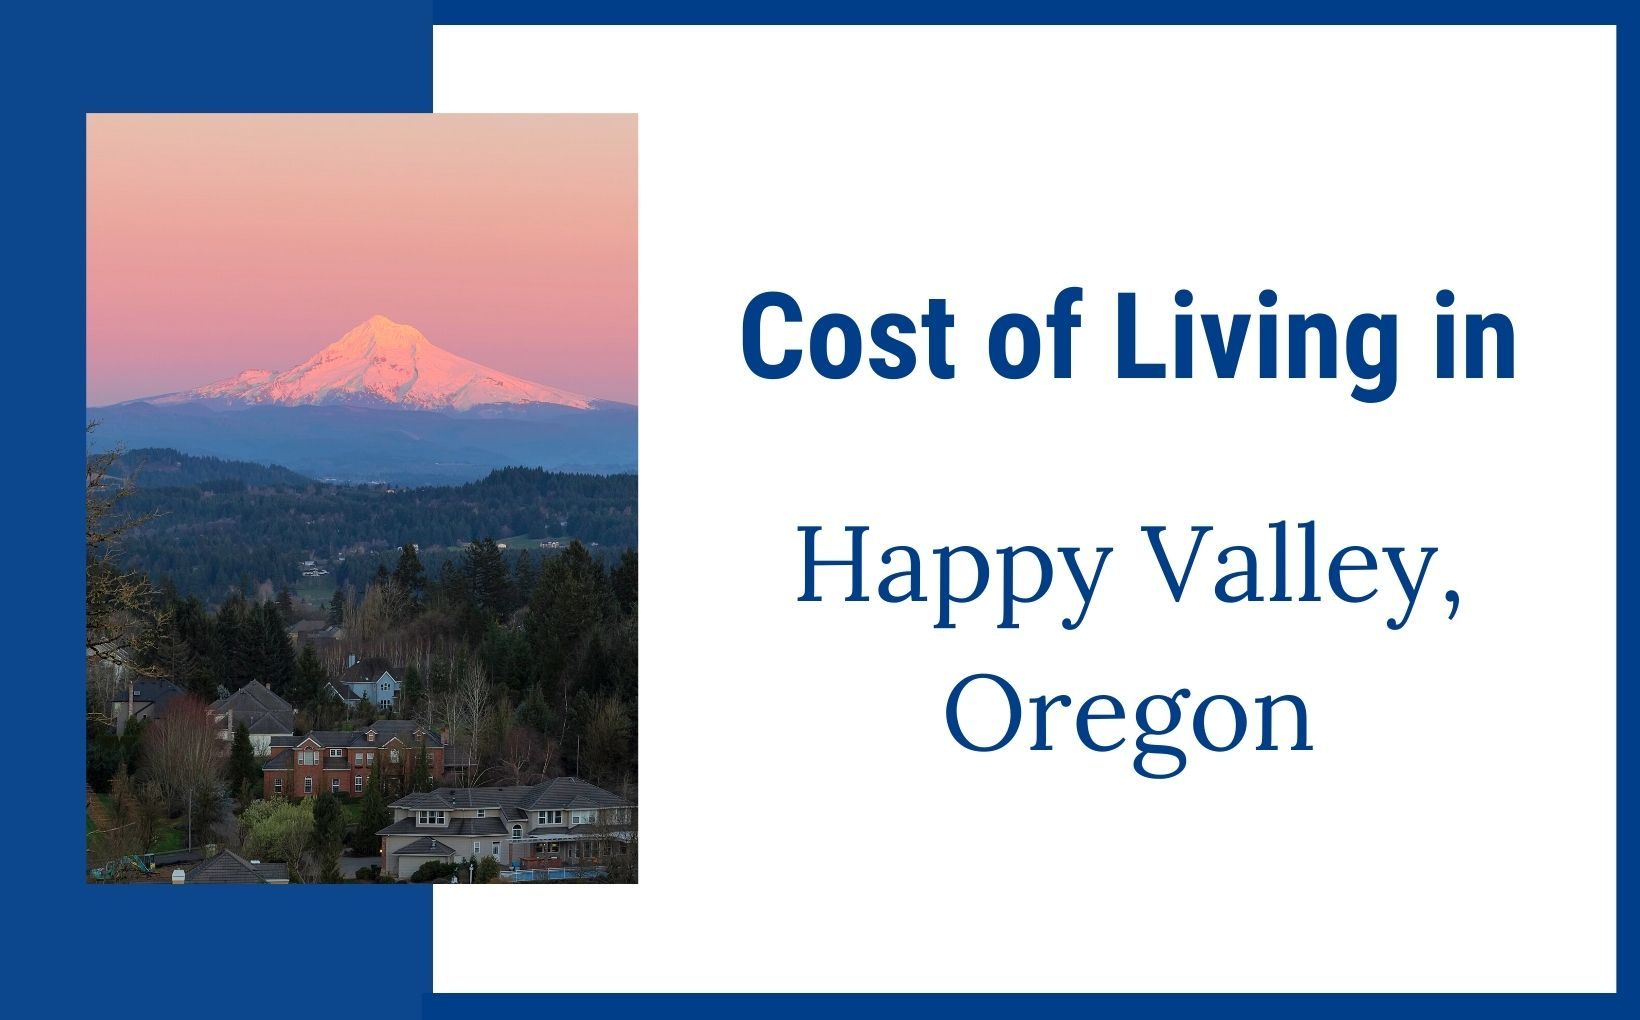 Cost of Living in Happy Valley Oregon feature image